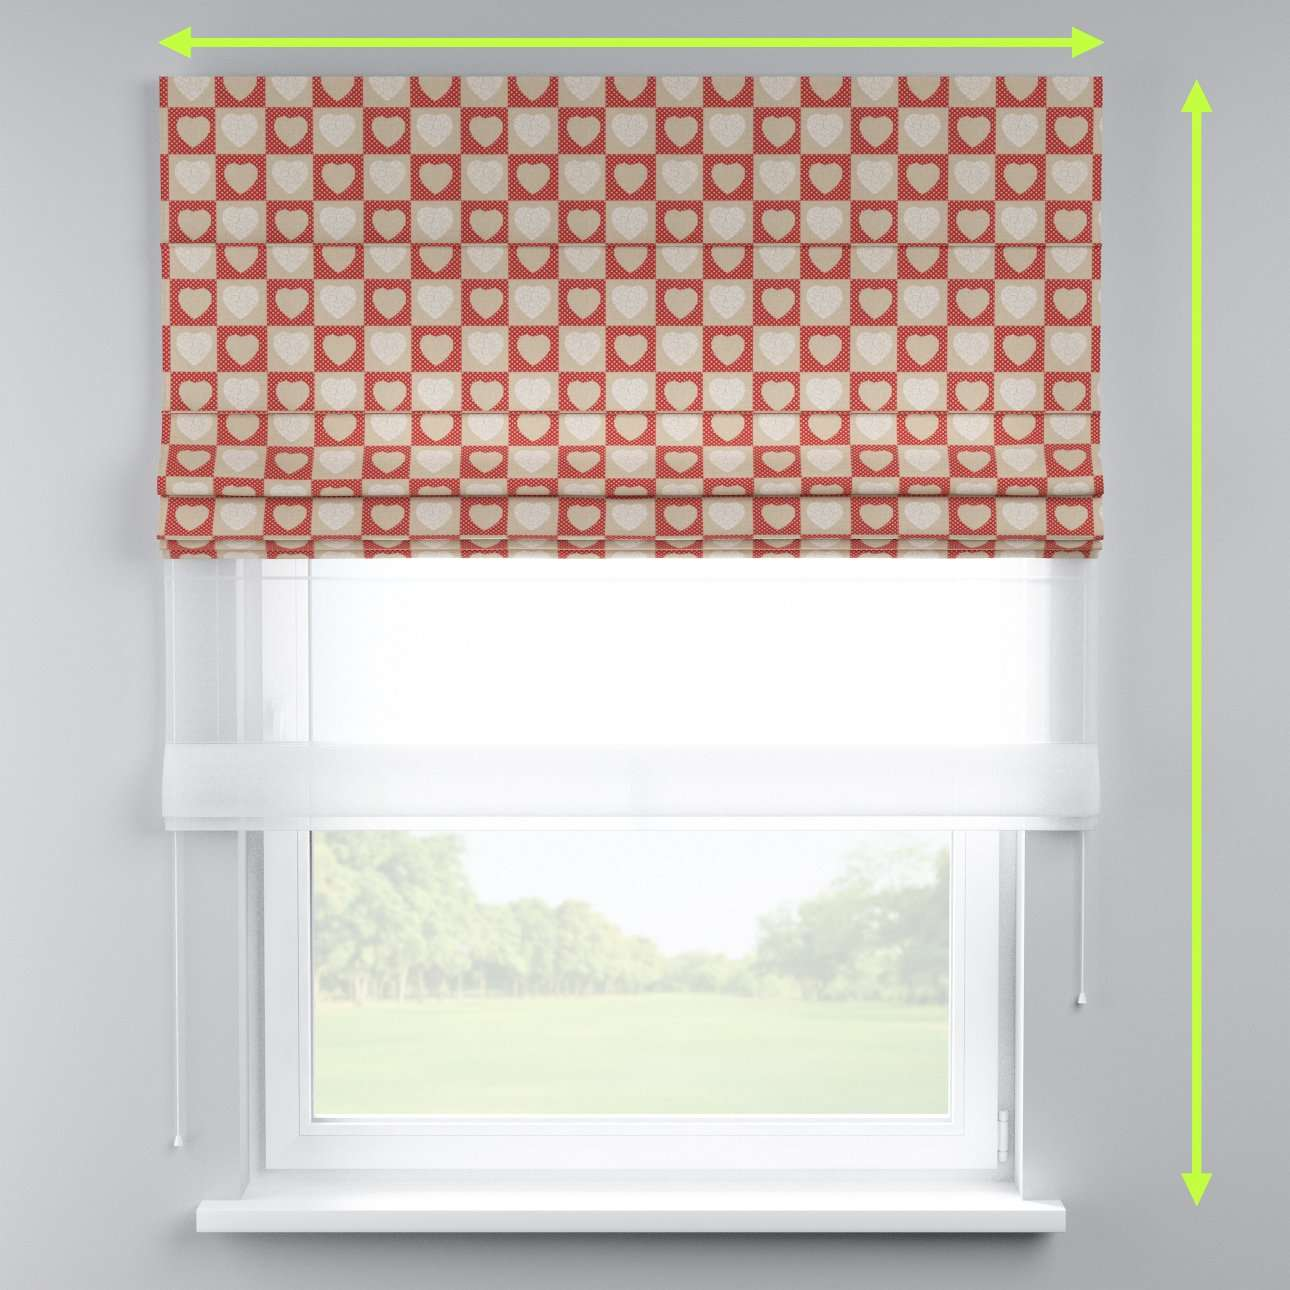 Voile and fabric roman blind (DUO II) in collection Christmas, fabric: 629-16